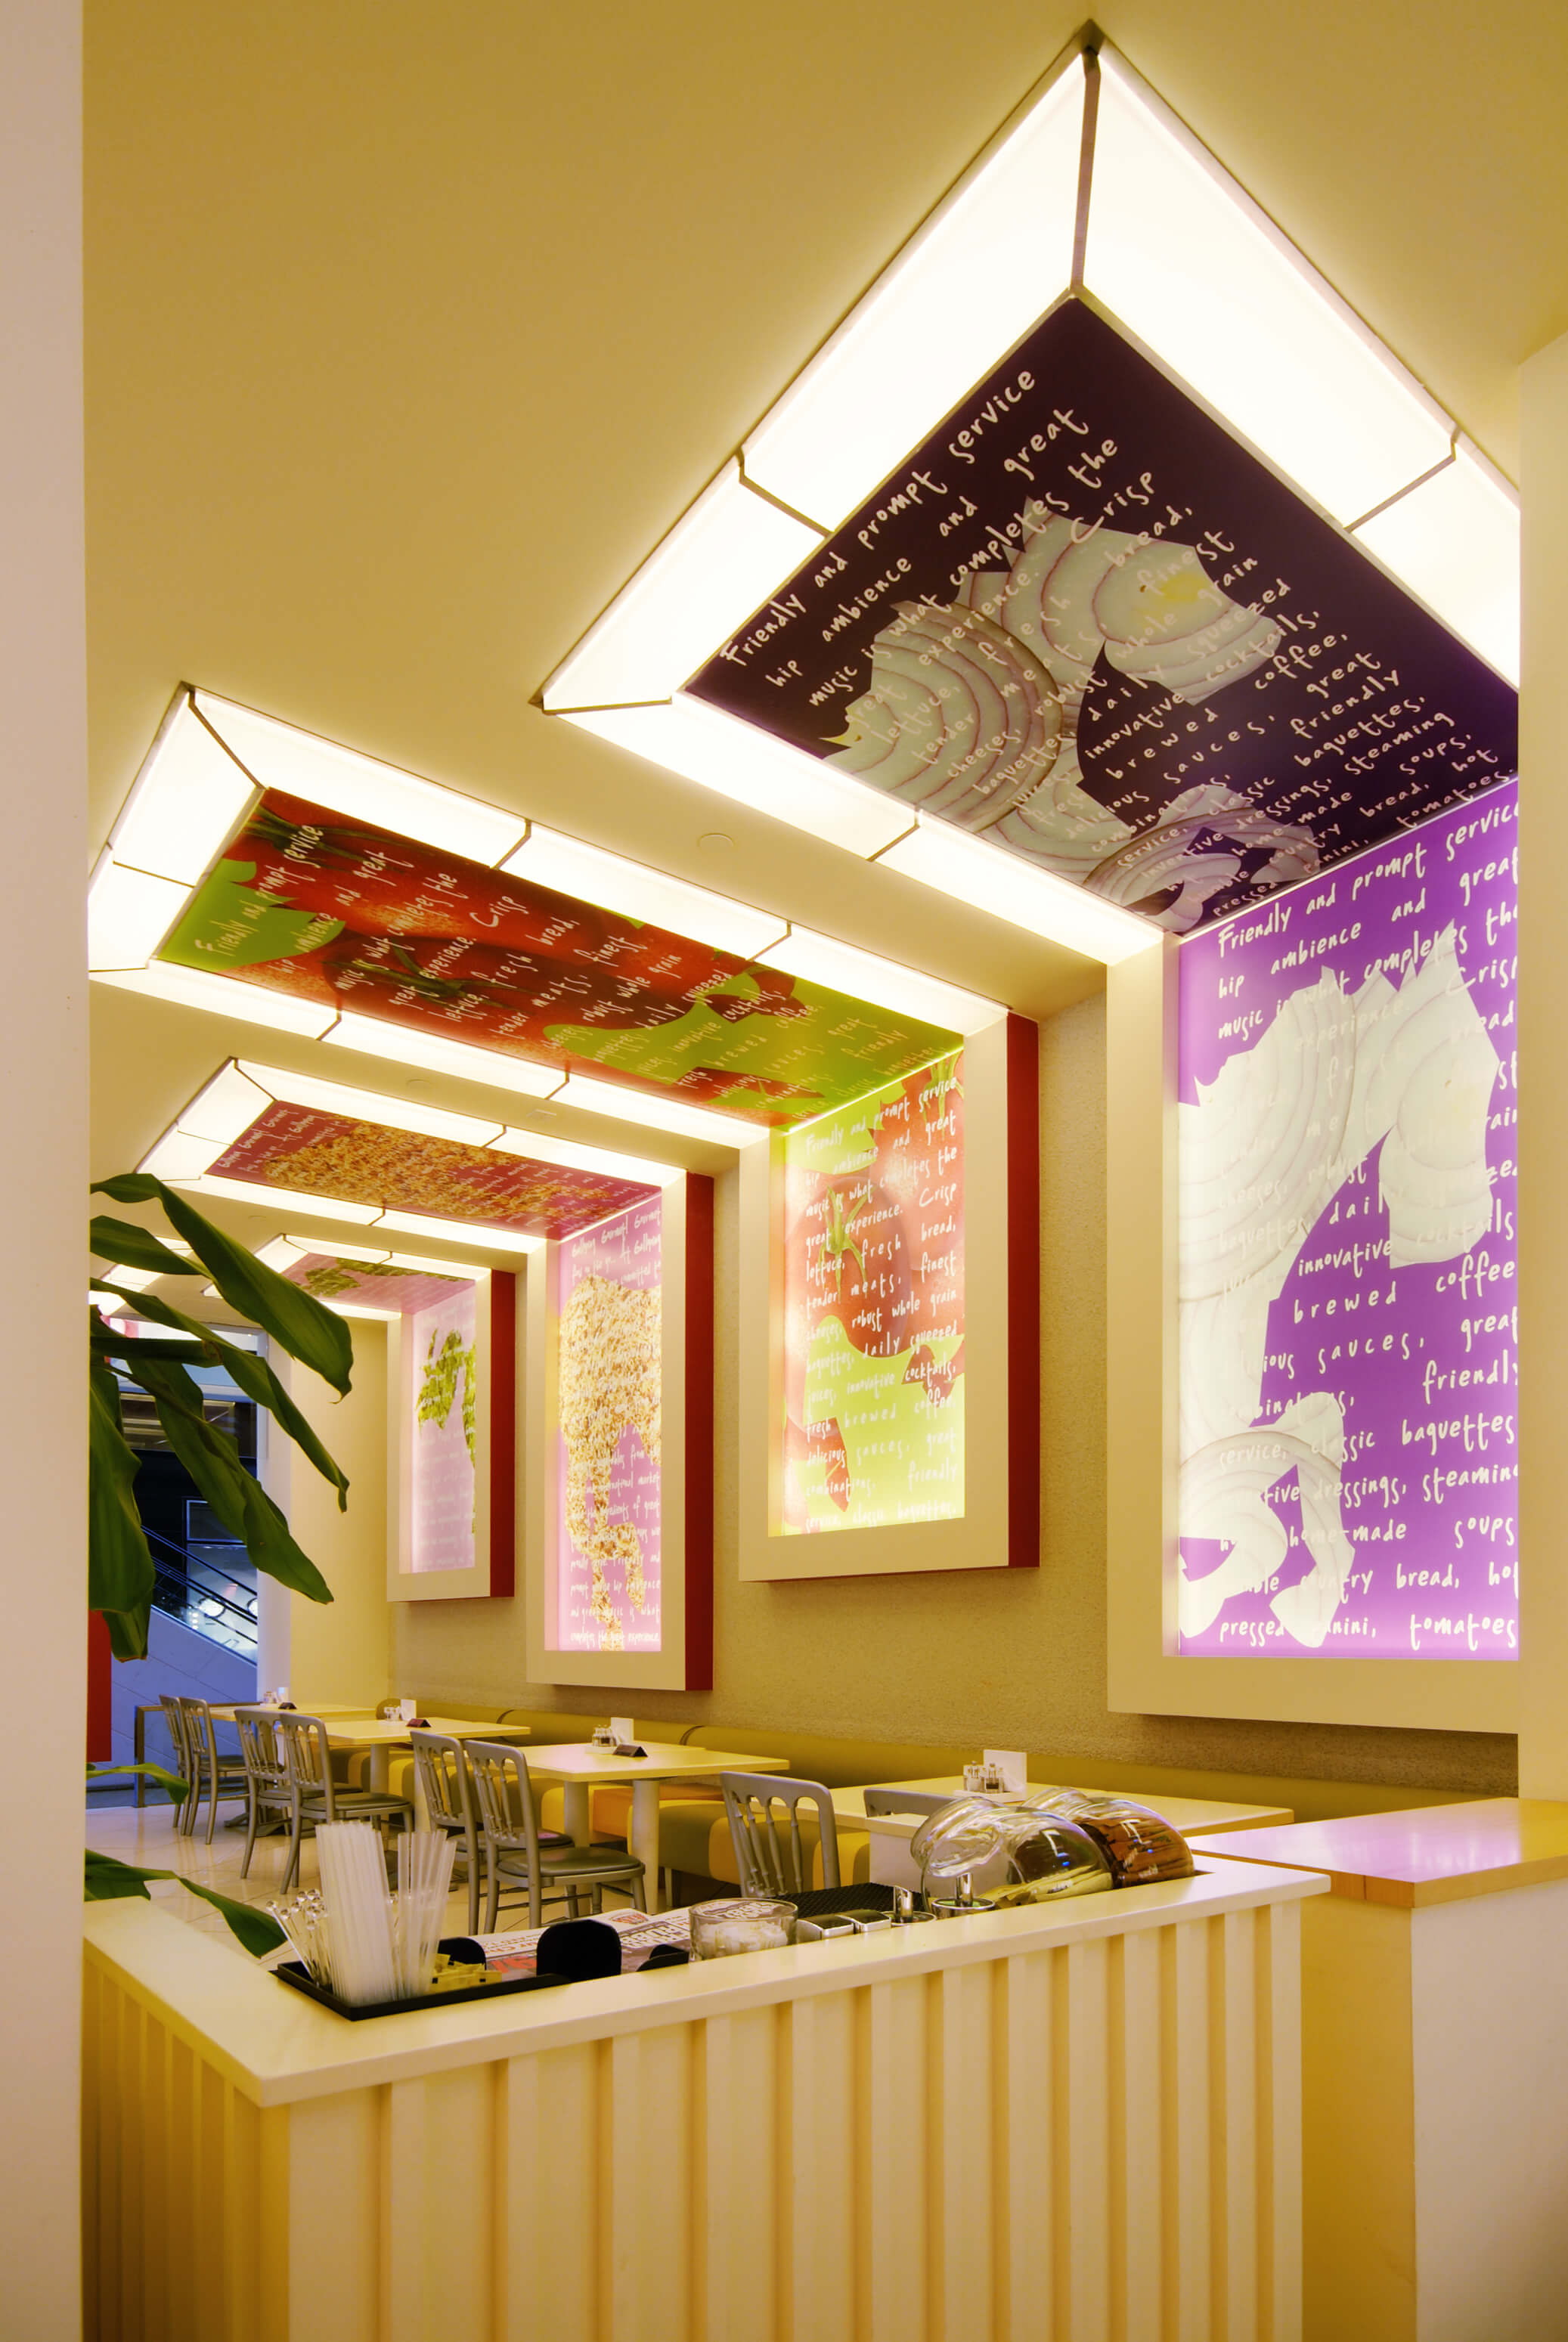 Gourmet salad and sandwich cafe interiors interiorsense